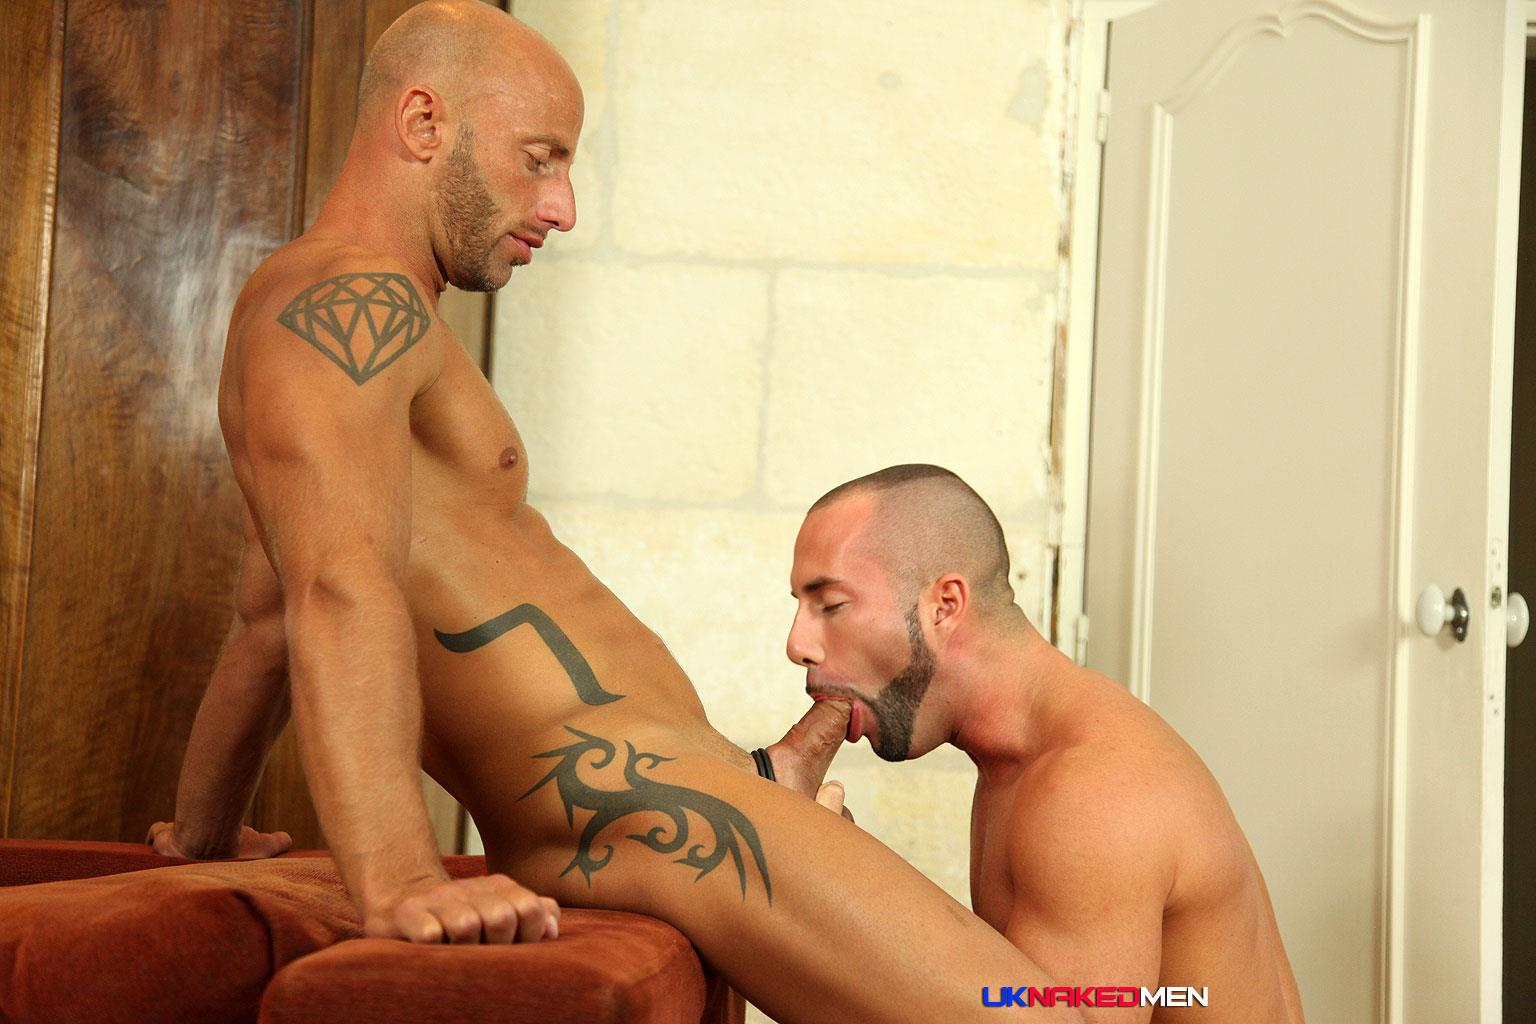 UK-Naked-Men-Aymeric-Deville-and-Craig-Farrel-Big-Thick-Uncut-Cocks-Fucking-Amateur-Gay-Porn-12 Aymeric Deville And His Thick Uncut Cock Getting Fucked By A Stranger